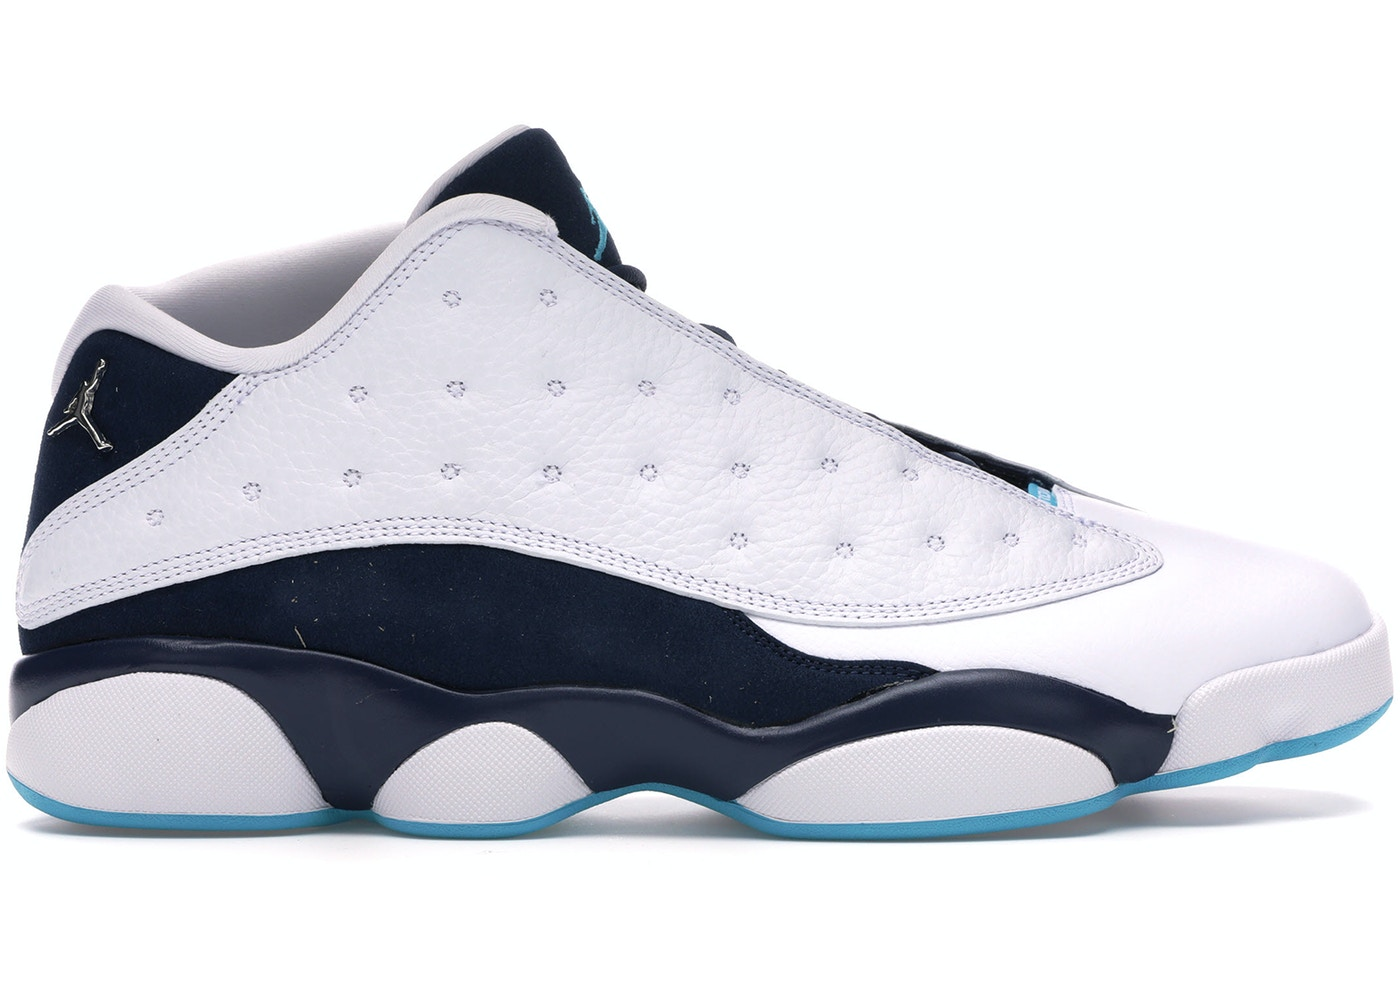 63db7fa67a3 Buy Air Jordan 13 Size 14 Shoes & Deadstock Sneakers